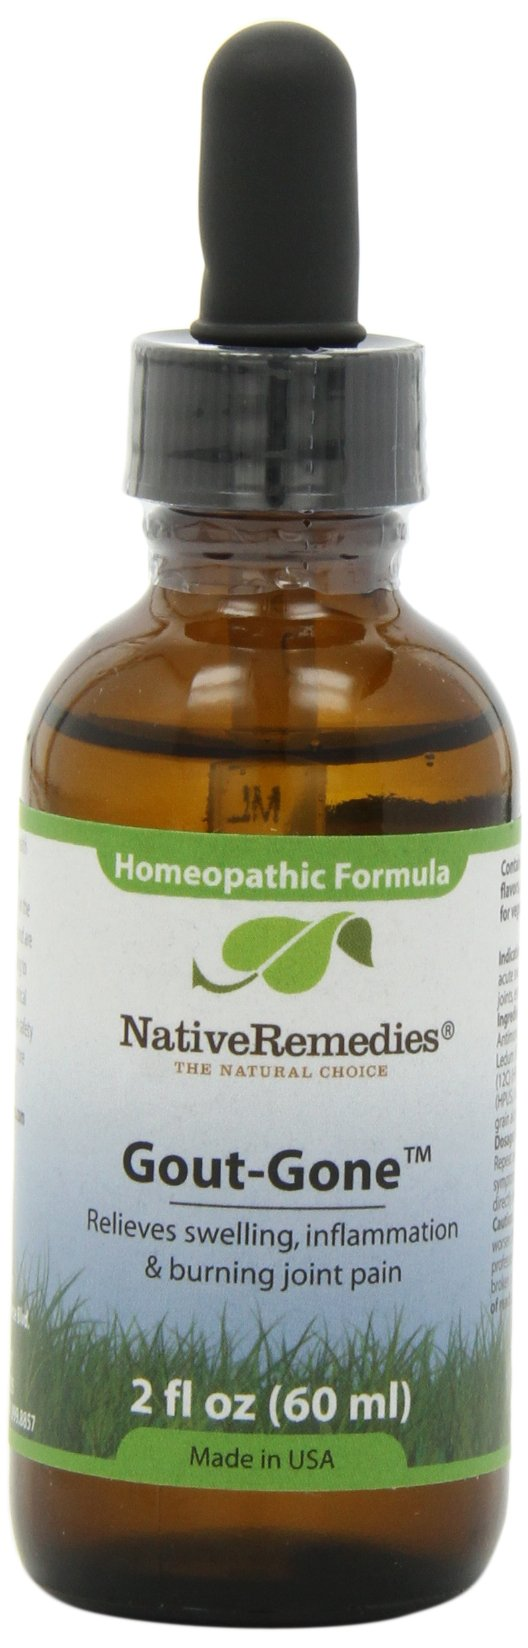 Native Remedies Gout-Gone, 60 ml Bottle